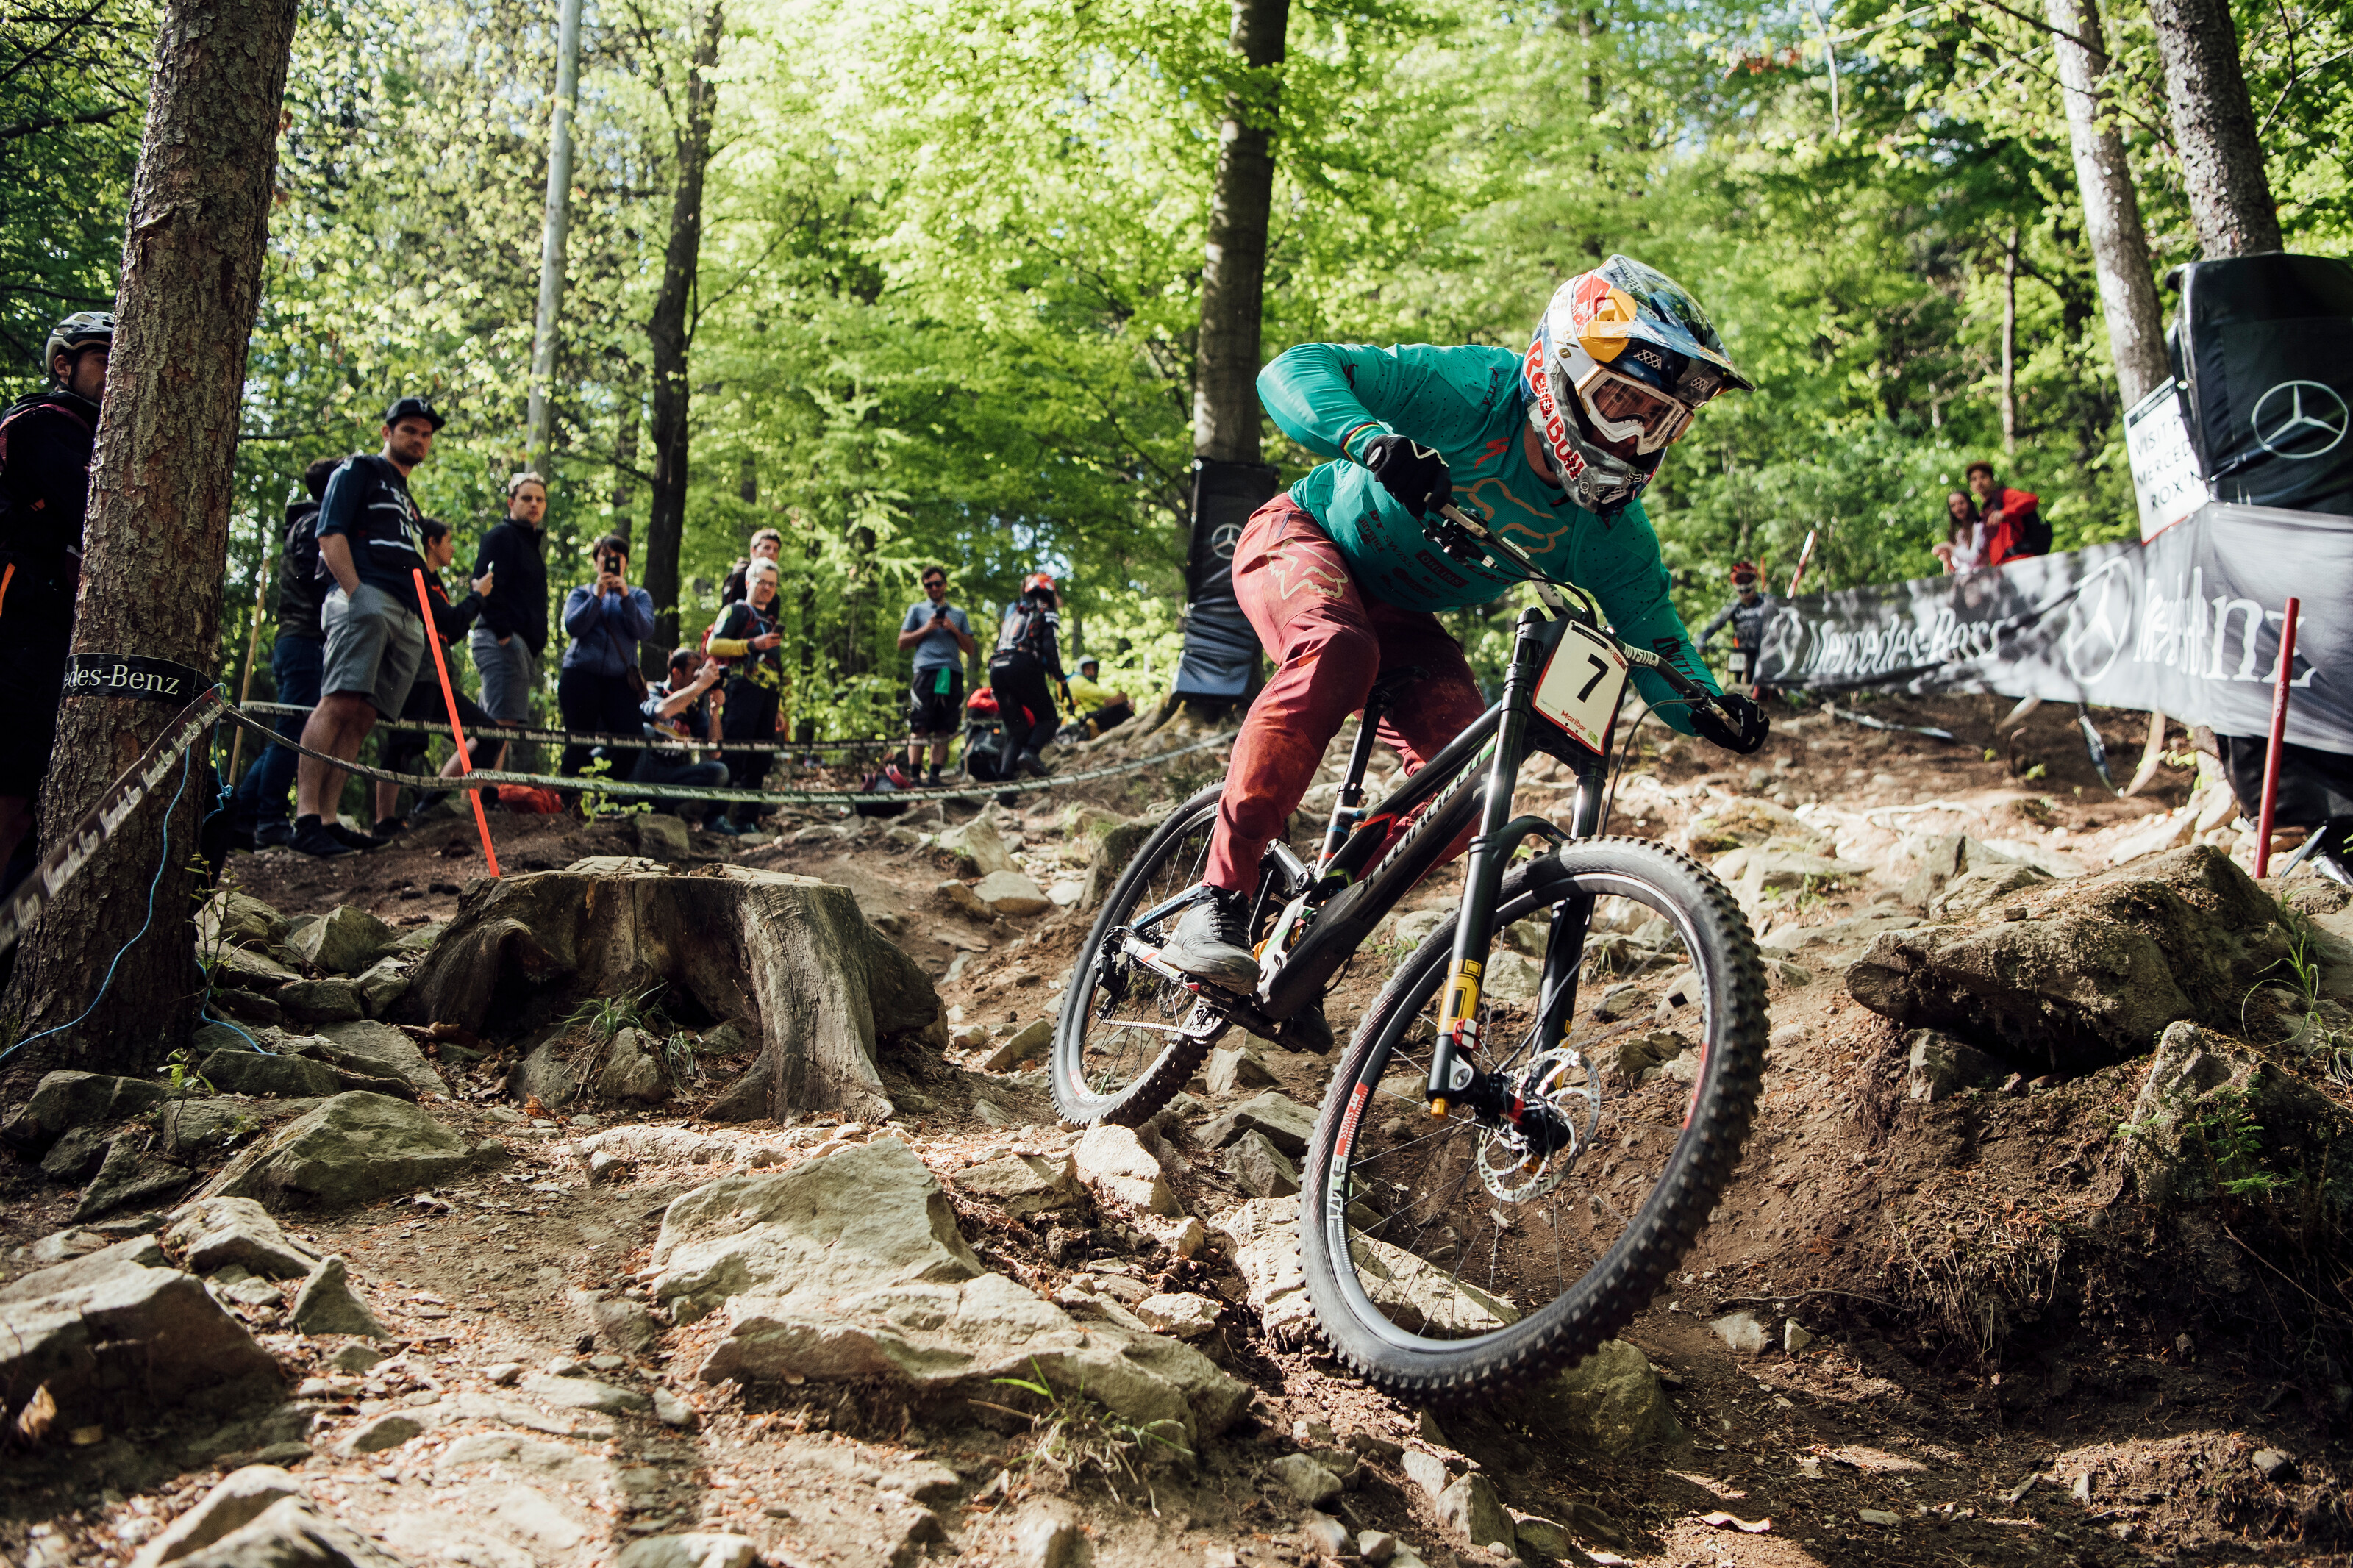 67e3794feae Bike / UCI MTB World Cup / Bruni and Seagrave open season with Maribor  downhill wins